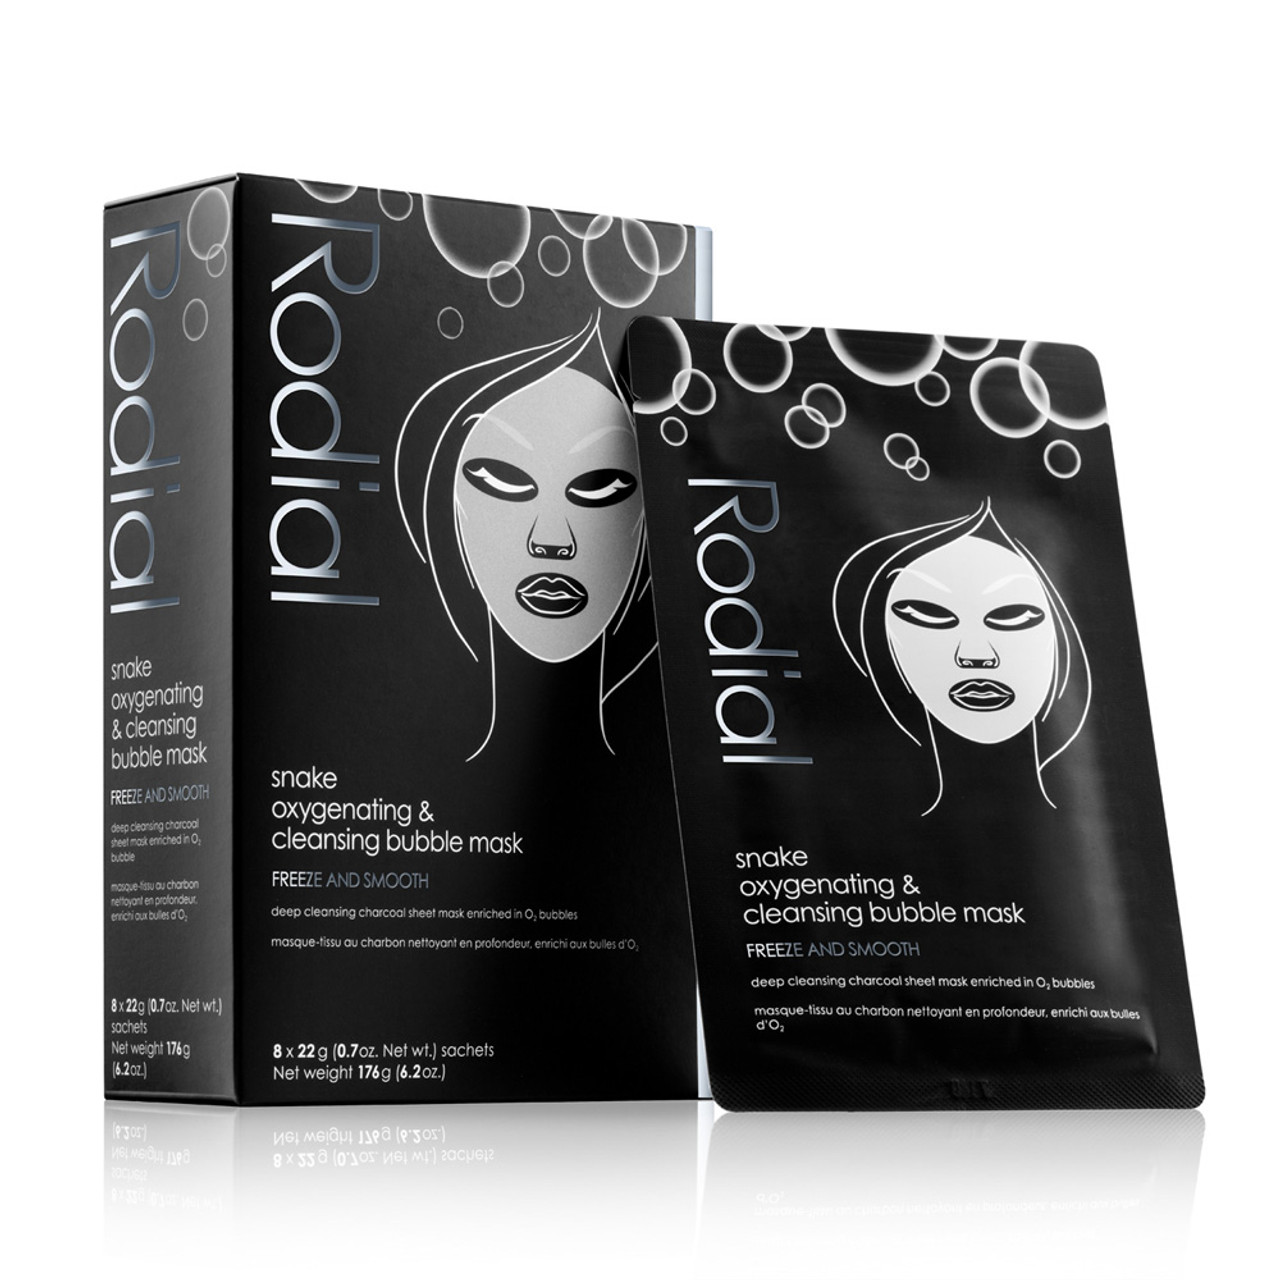 Rodial Snake Oxygenating & Cleansing Bubble Sheet Mask 2